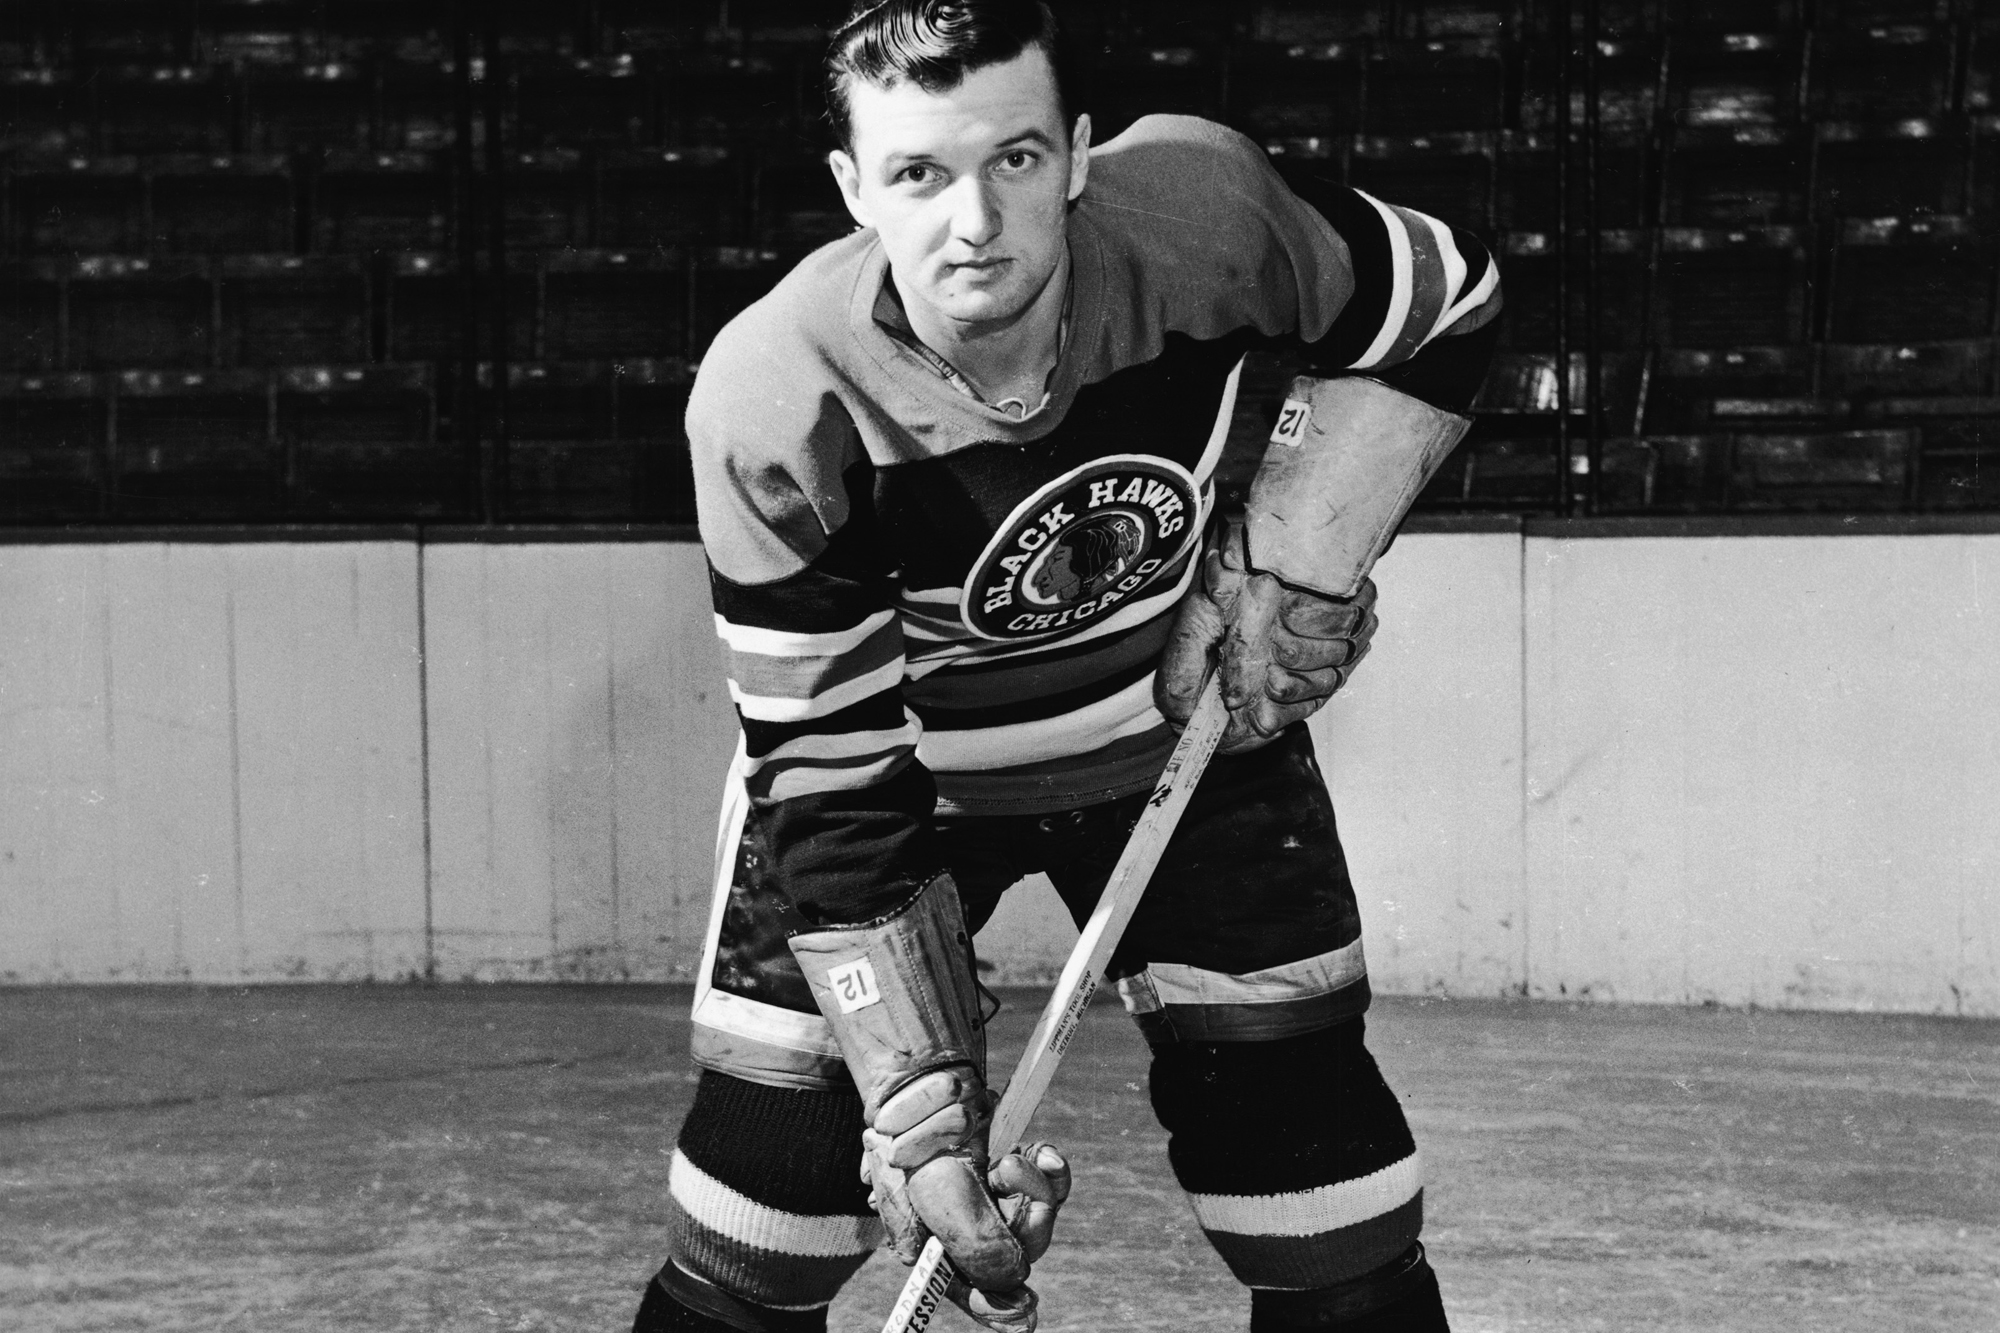 Canadian professional hockey player center Gus Bodnar (1923 - 2005) of the Chicago Blackhawks poses for a portrait on the ice, mid 20th Century. Bodnar played with the Blackhawks from 1947 to 1954.